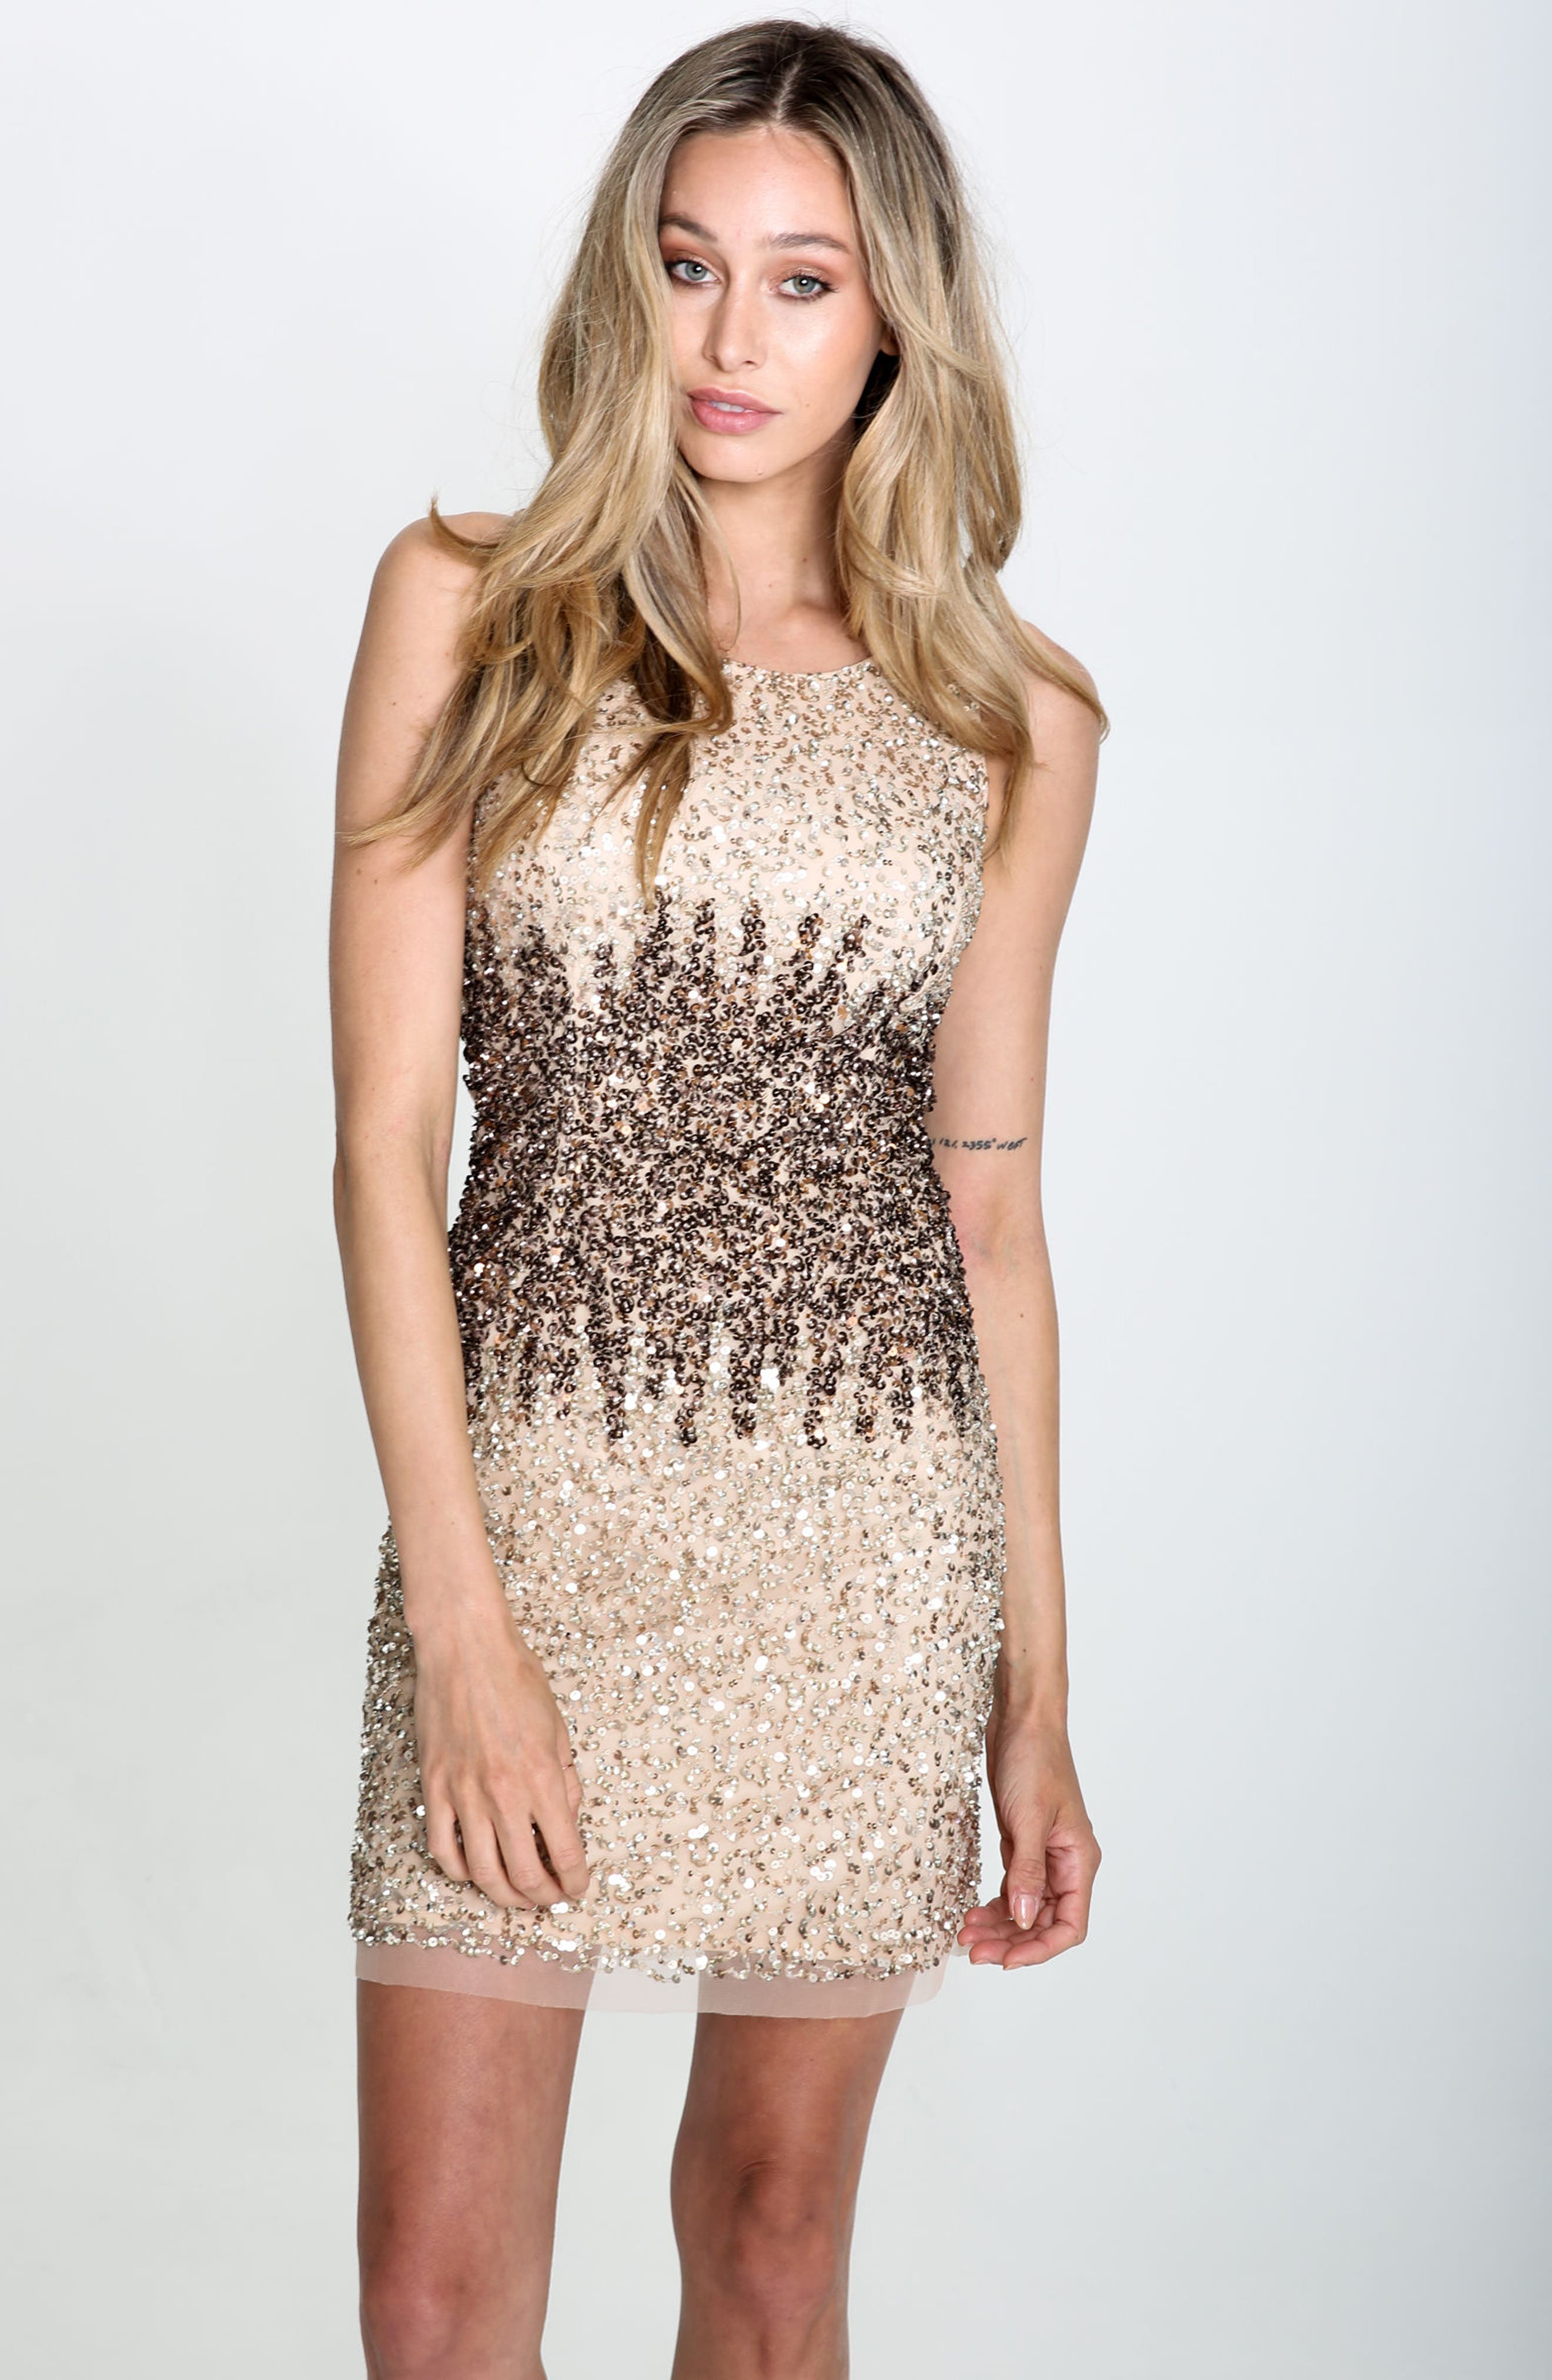 Sequins and Champagne Dress,                             Alternate thumbnail 7, color,                             280